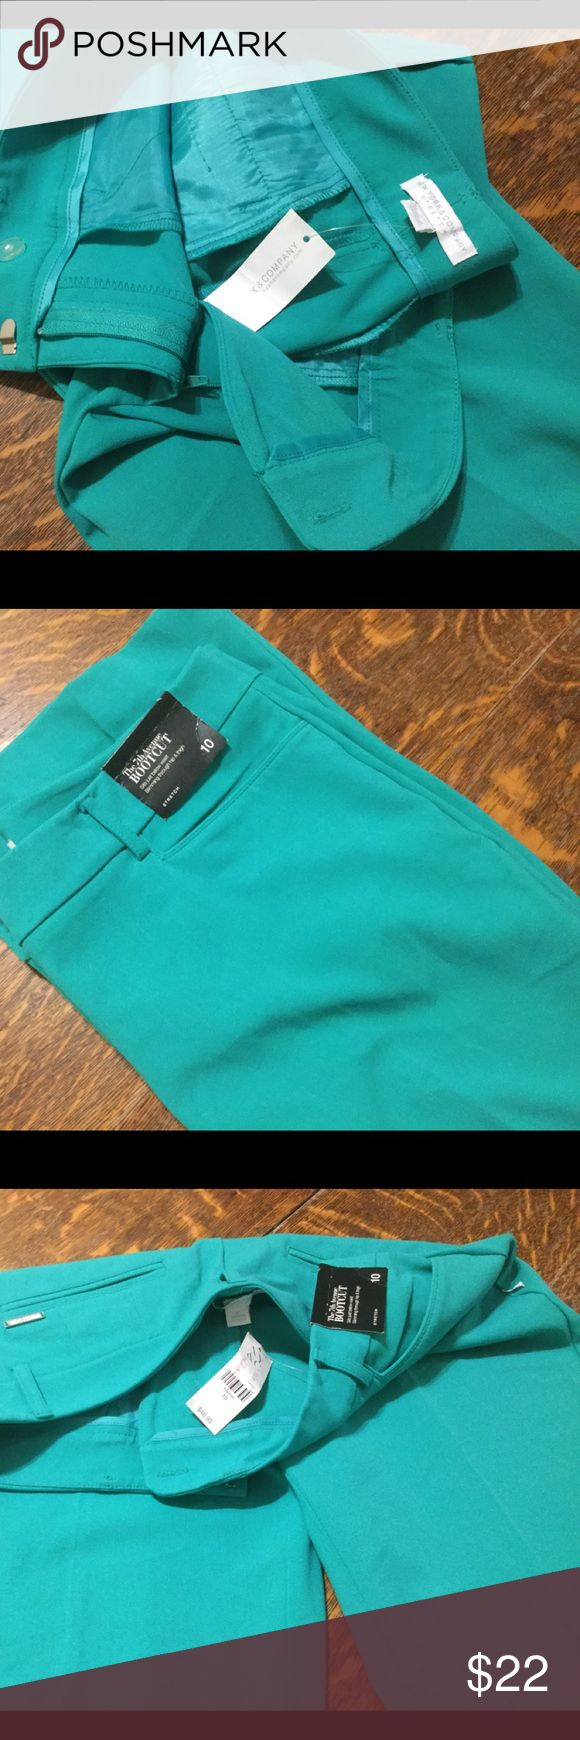 Woman's new with tags mint green pants ny & co Stretch material, casual or dress slacks in green. New York & Company Pants Boot Cut & Flare